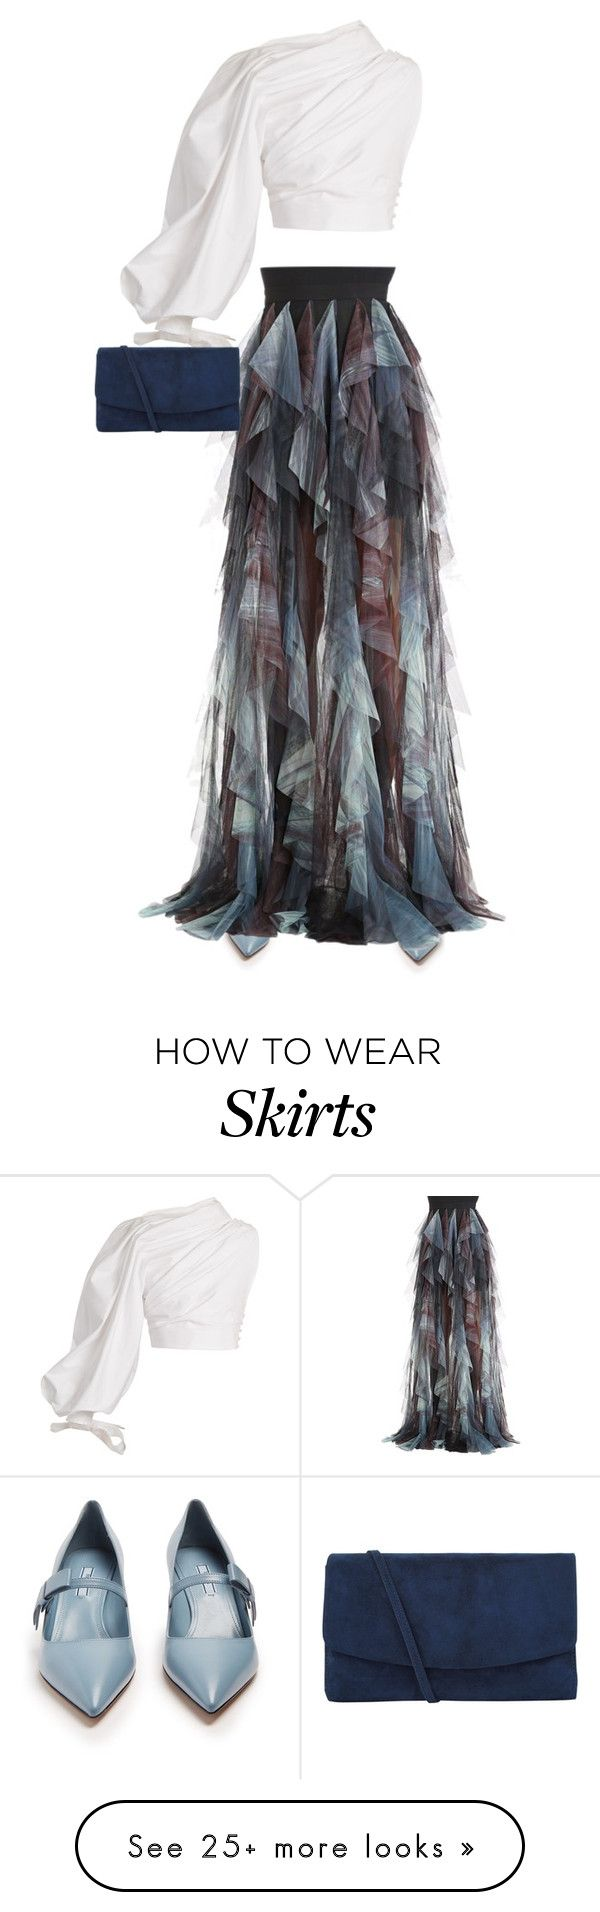 """""""tulle skirt"""" by oxigenio on Polyvore featuring Prada, Elie Saab, Jacquemus and Hobbs"""